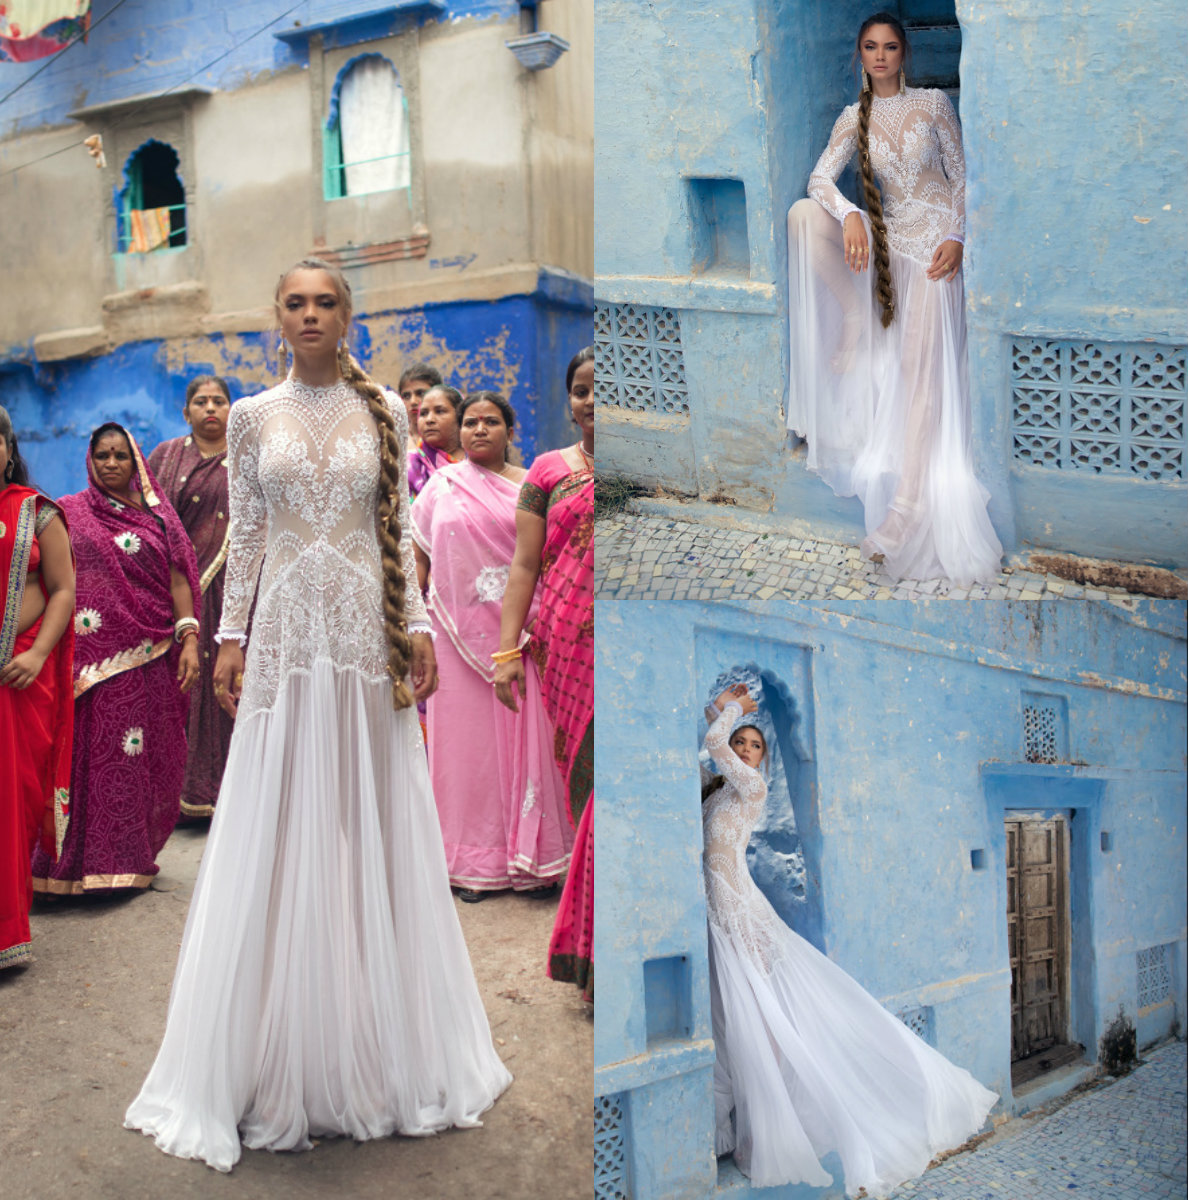 Wholesale Red India Wedding Dress Buy Cheap In Bulk From China Suppliers With Coupon Dhgate Com,Outdoor Wedding Mother Of The Bride Dresses For Summer